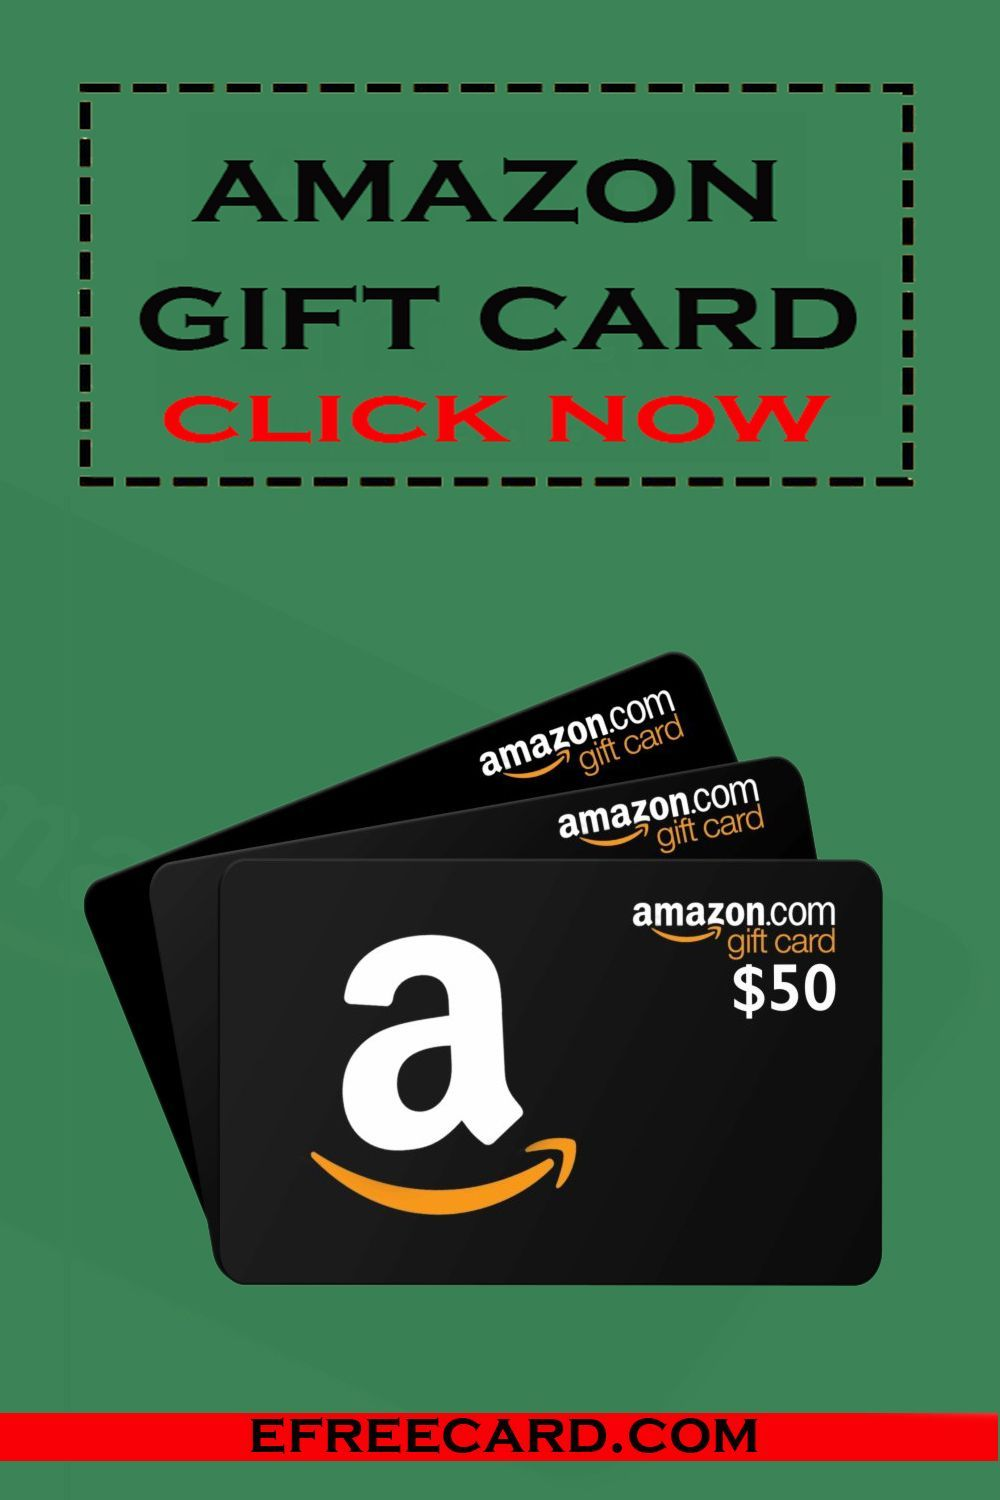 Pin By My Business On Amazon Gifts Cards Amazon Gift Card Free Amazon Gift Cards Amazon Gifts